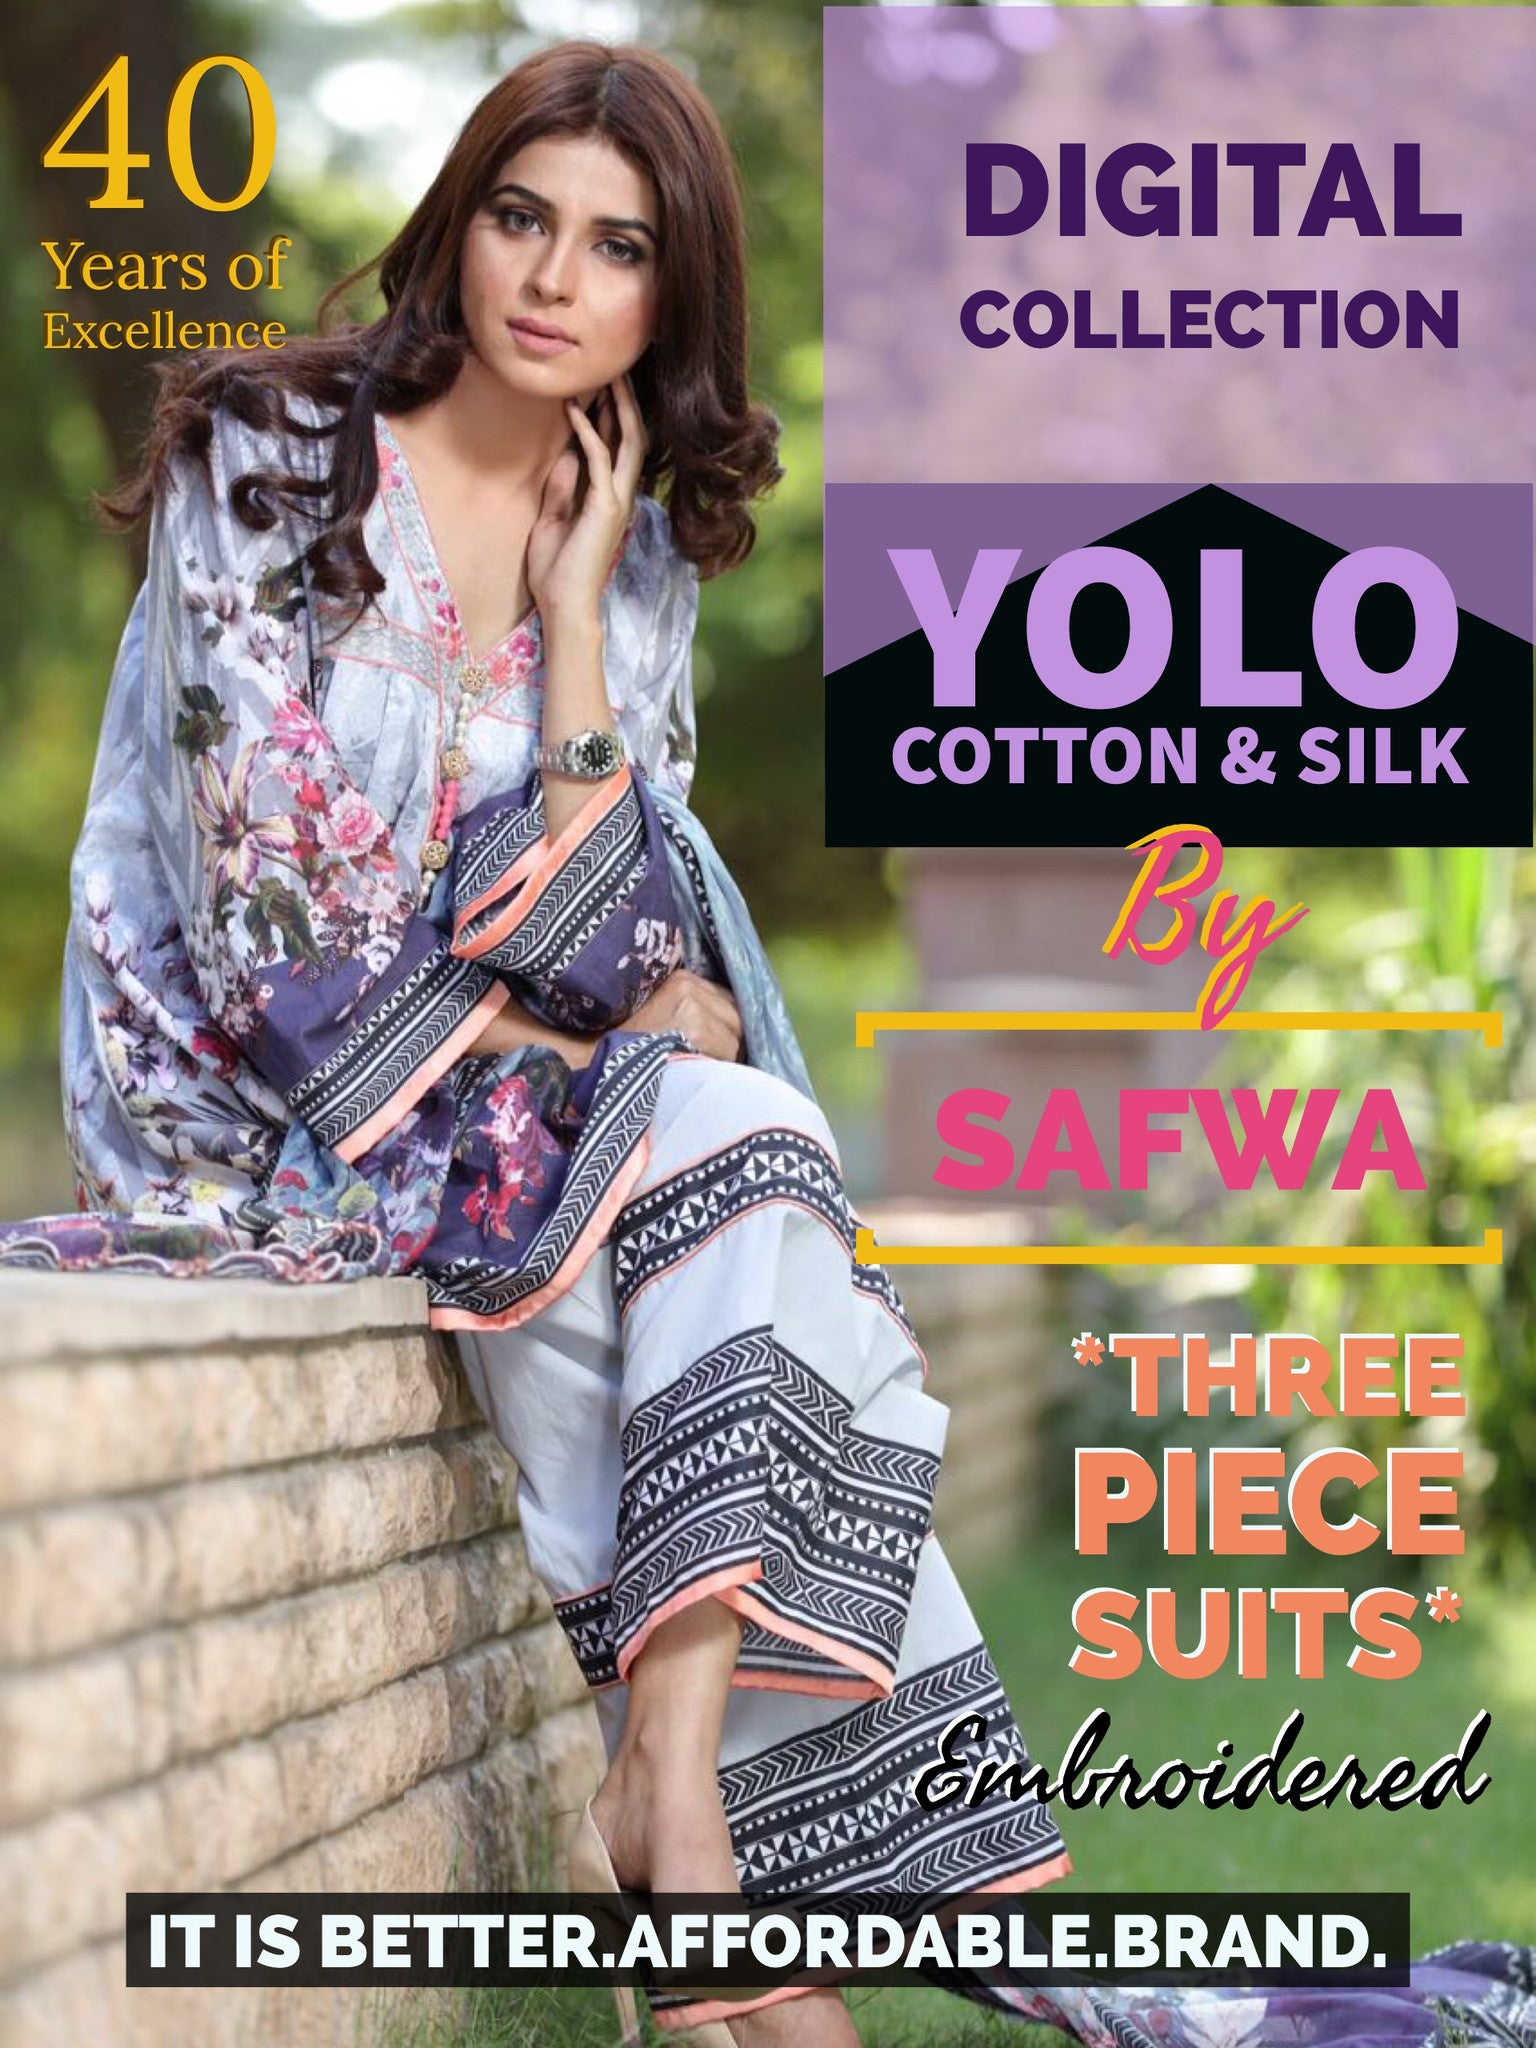 Safwa Yolo Cotton & Linen Collection Pakistani Clothes Online Shopping Pakistan